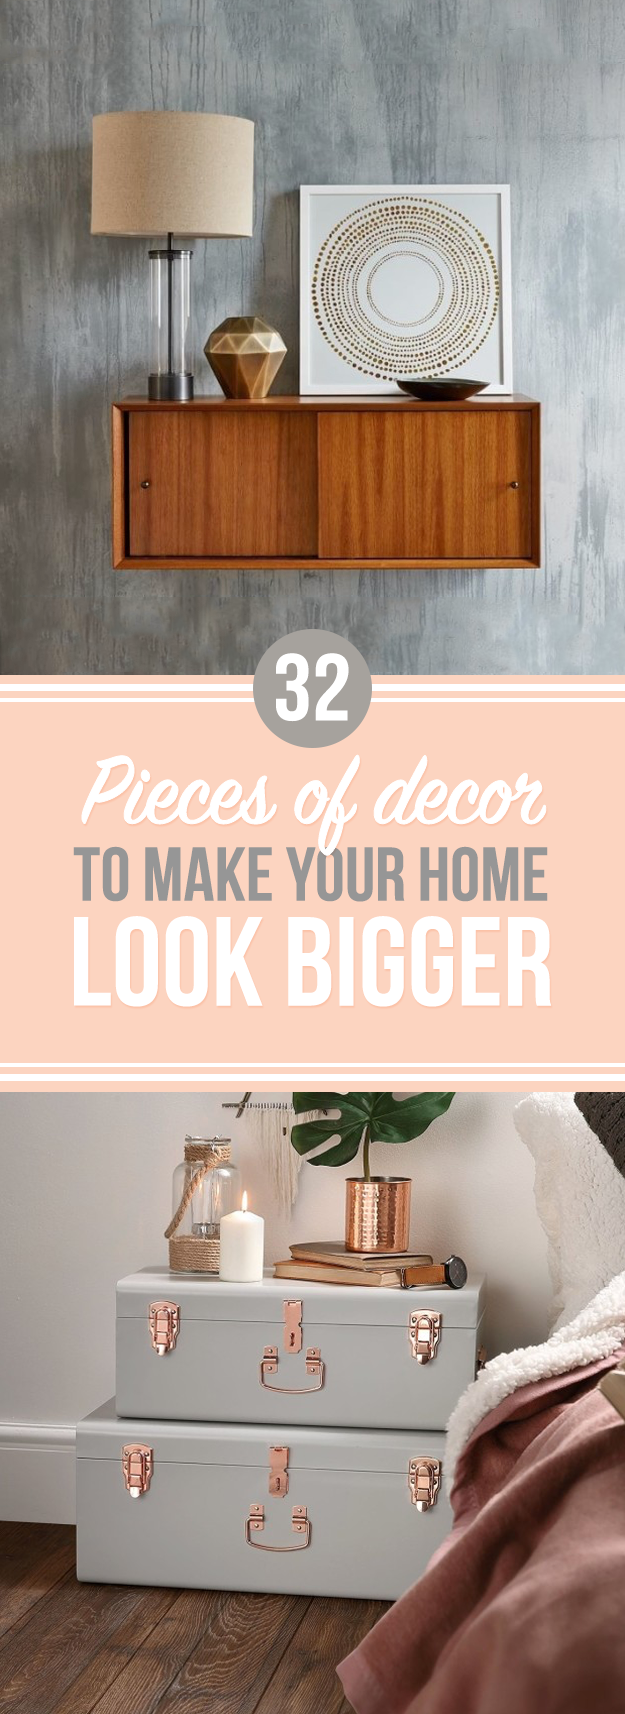 Decorating Ideas > 32 Things Thatll Make Even The Tiniest Apartment Feel Roomy ~ 013607_Apartment Decorating Ideas Buzzfeed